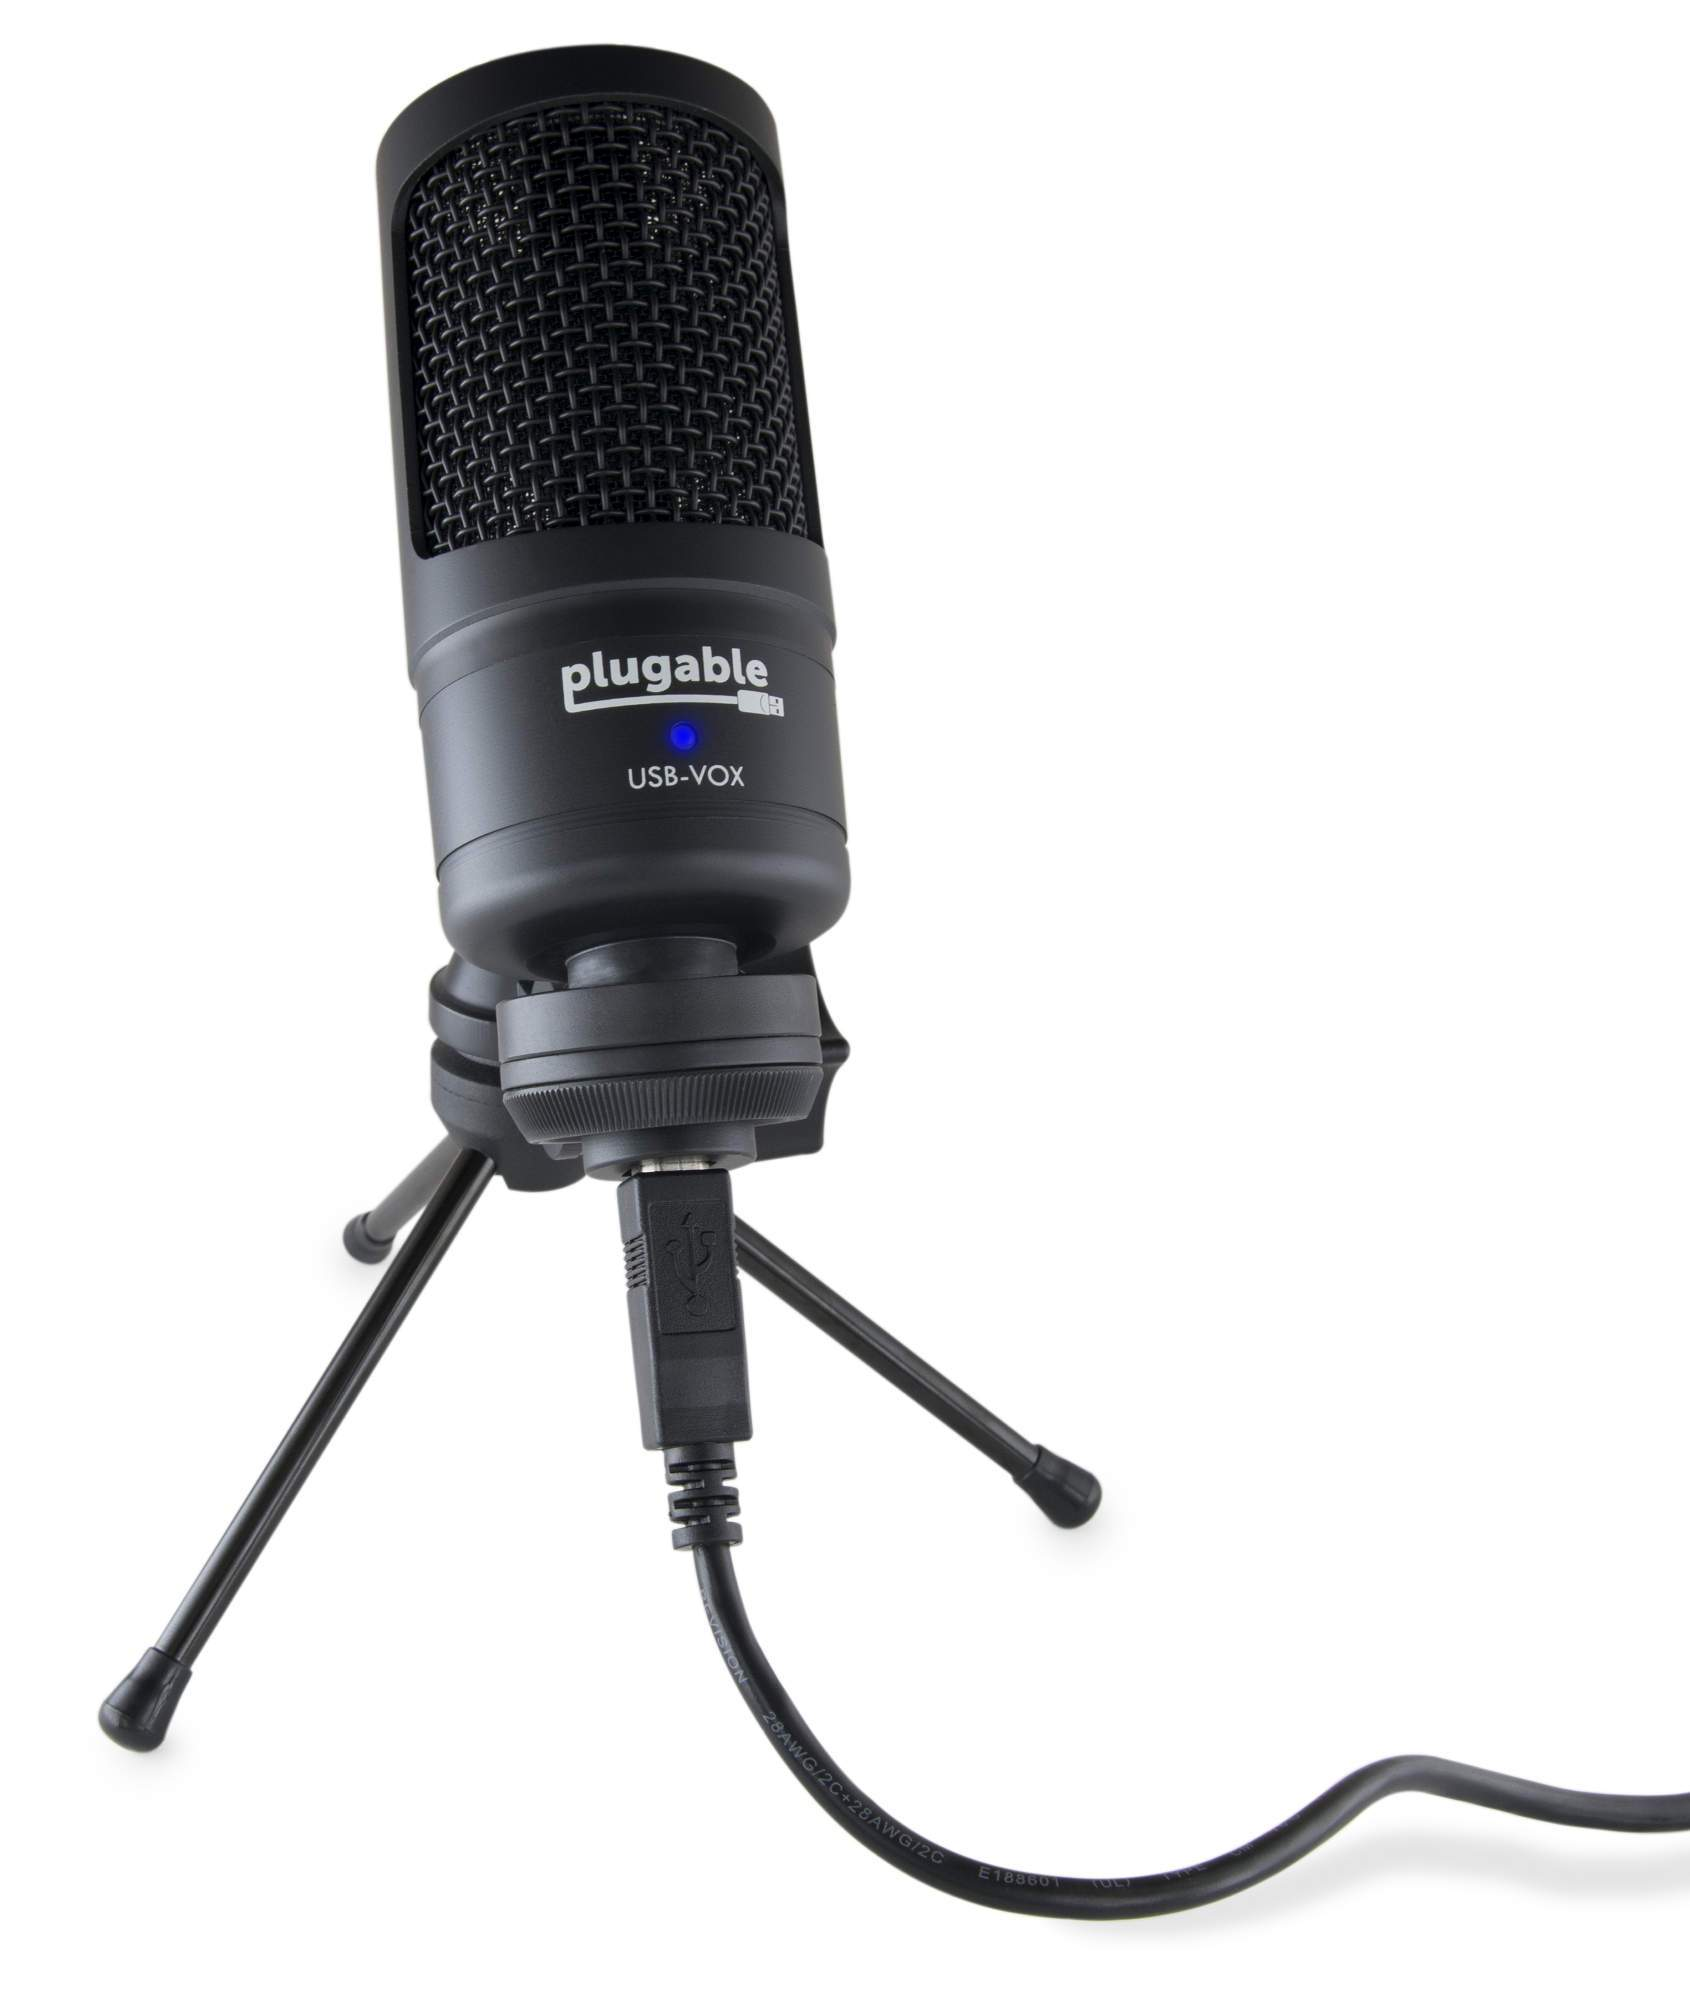 Review: Plugable USB-VOX studio microphone 2